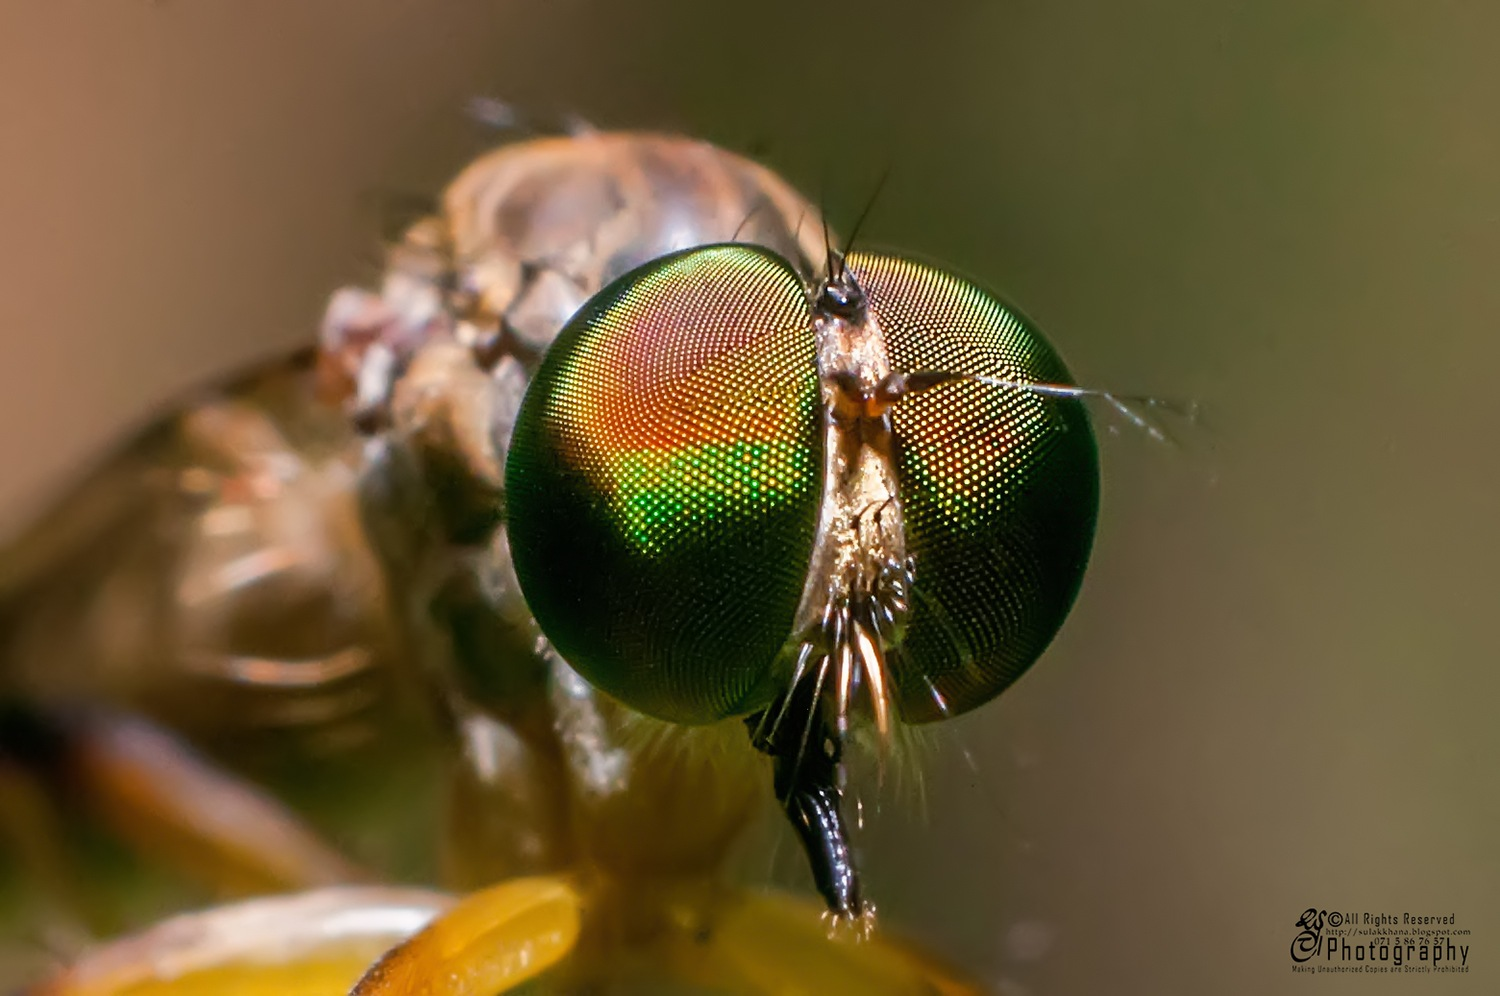 Compound Eyes of a Robber Fly by Sulakkhana Chamara